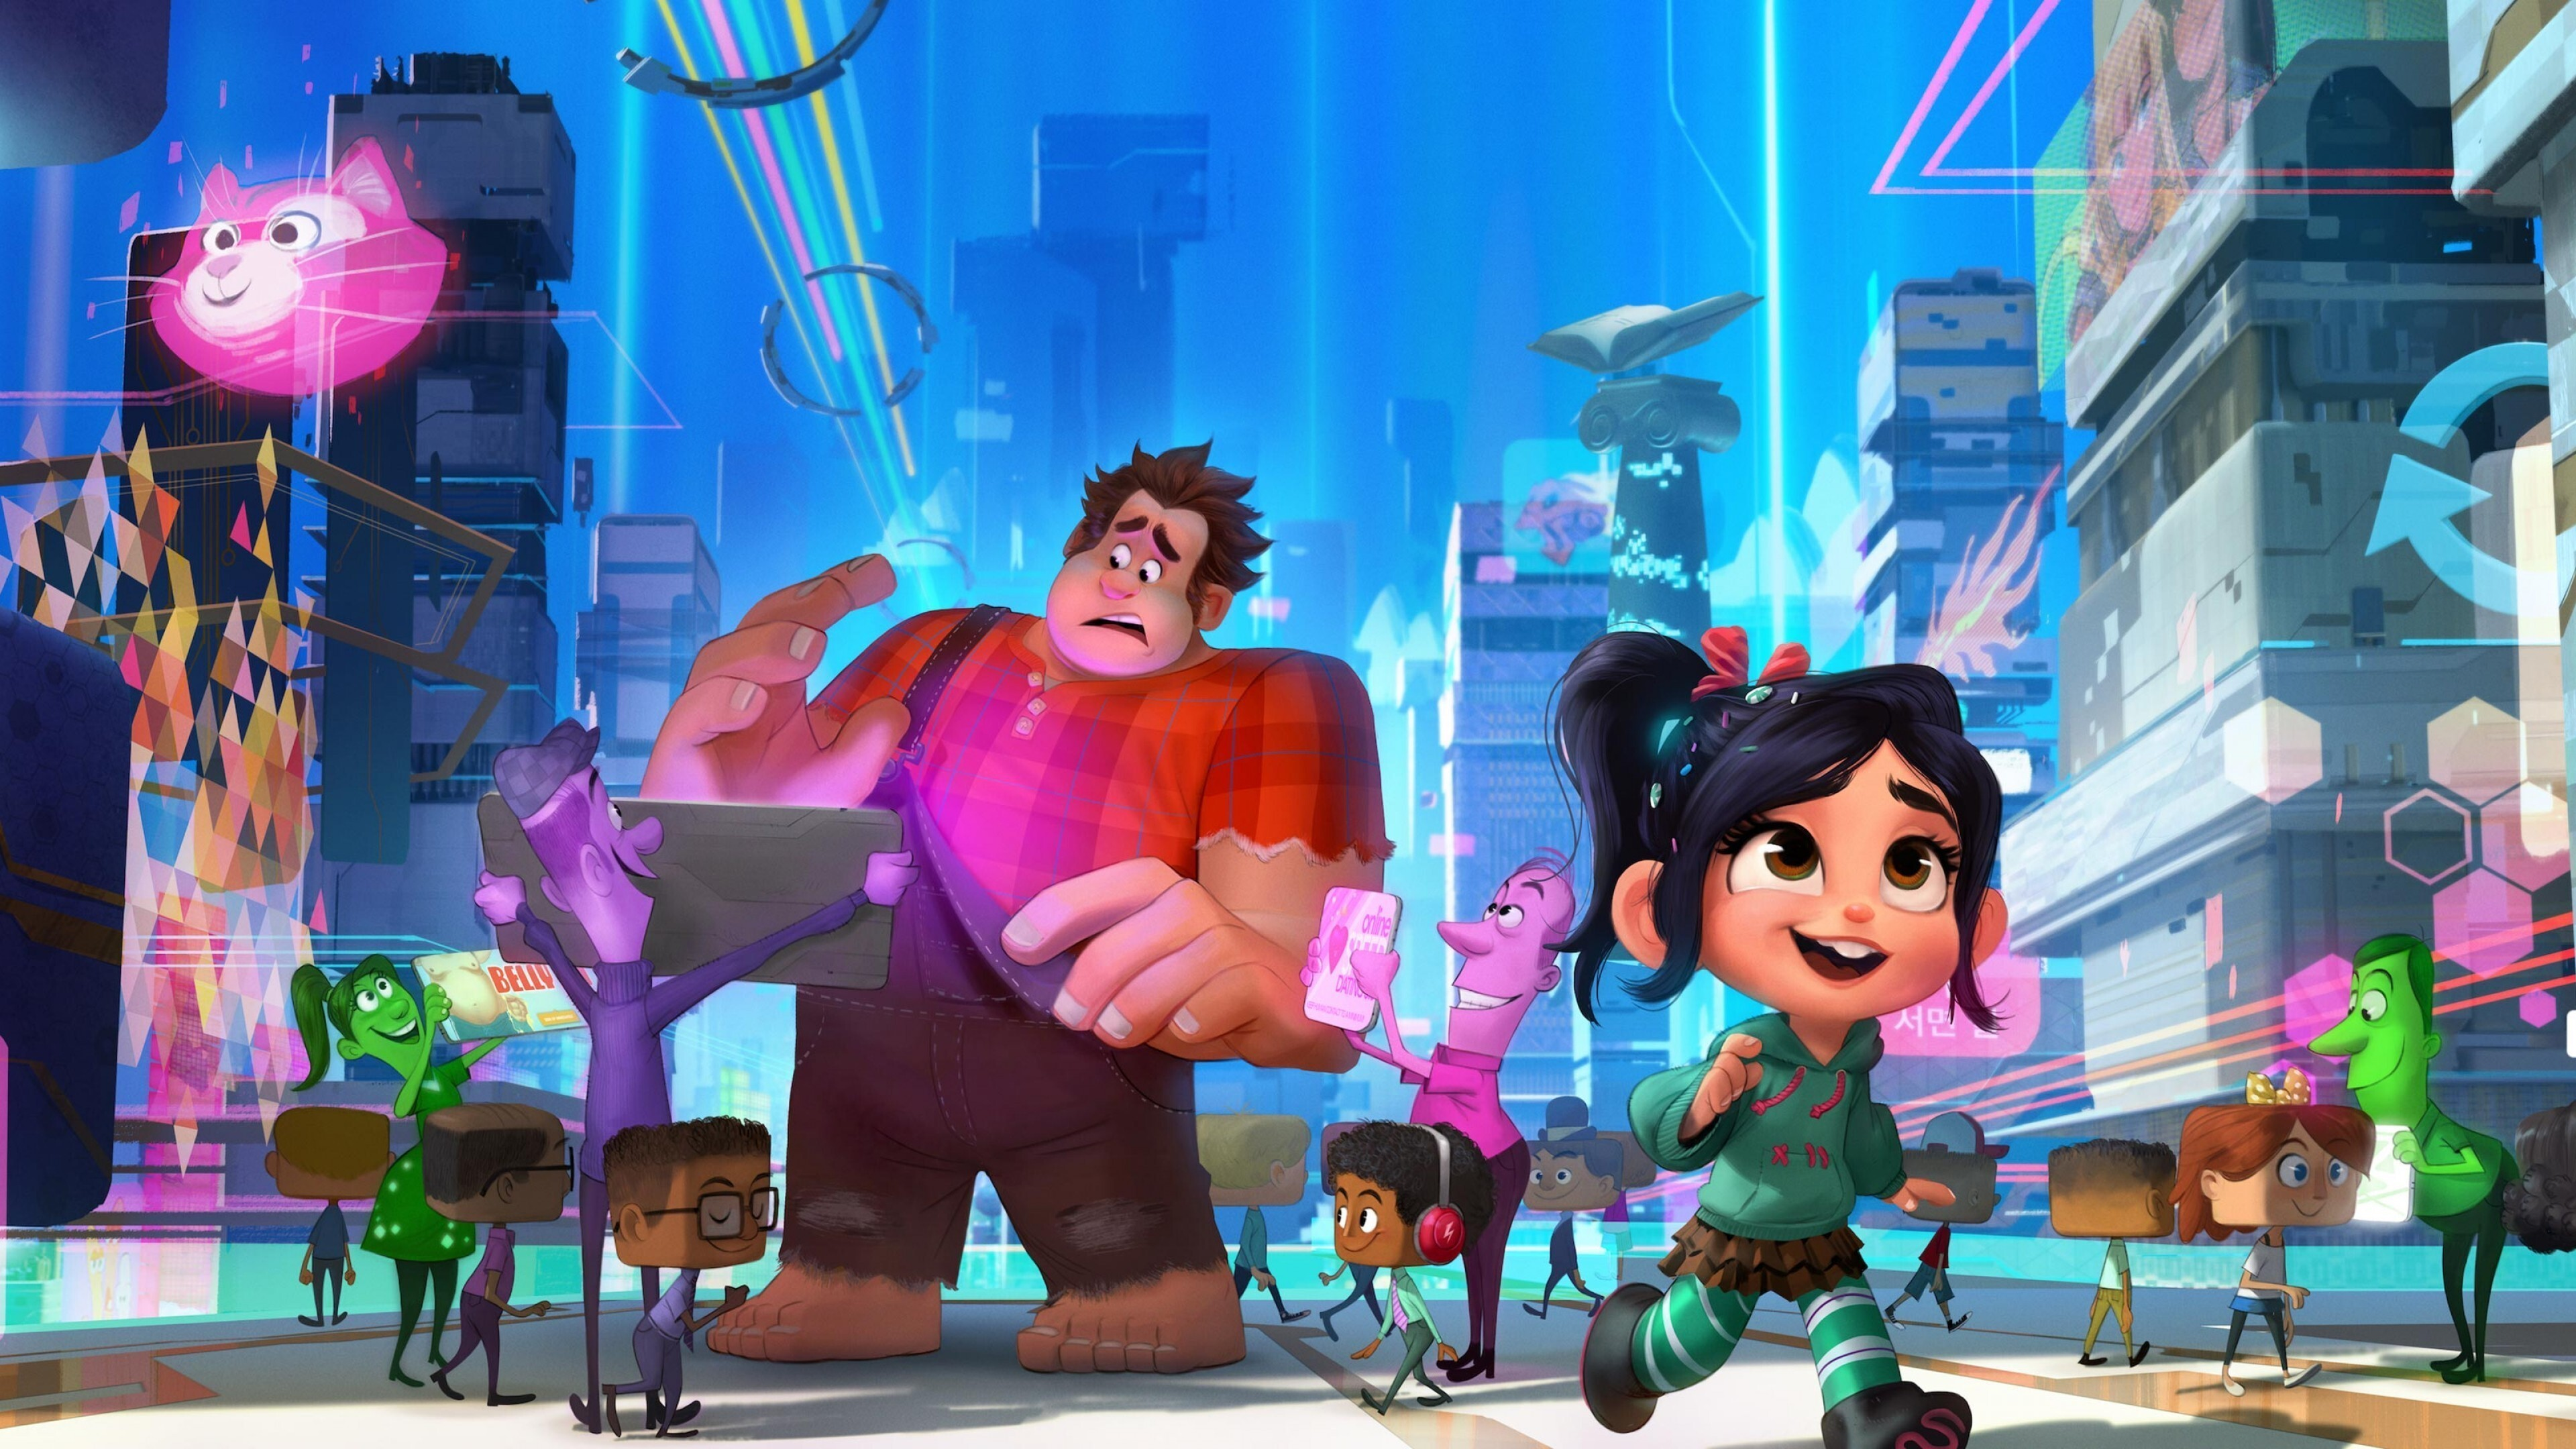 4k Wallpaper Of Ralph Breaks The Internet Hd Wallpapers